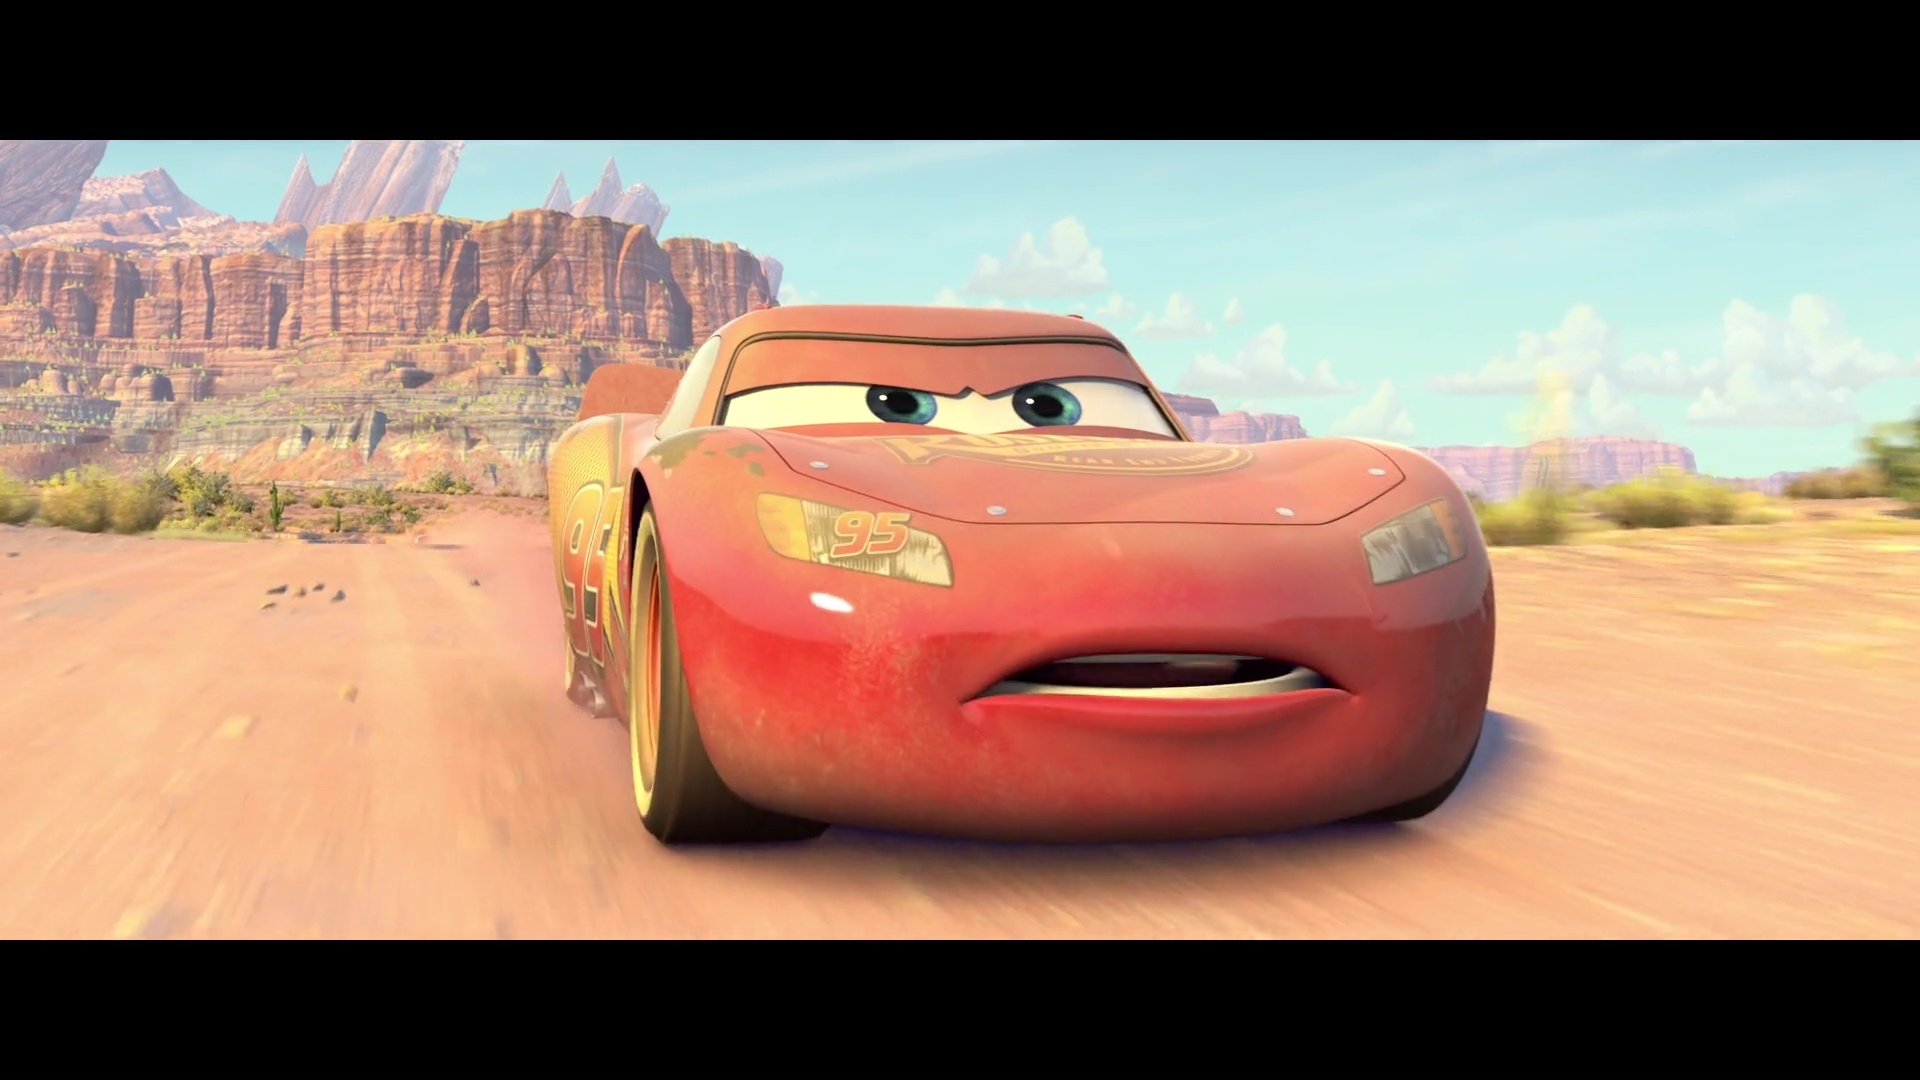 Cars 1 1080p Lat-Cast-Ing 5.1 (2006)